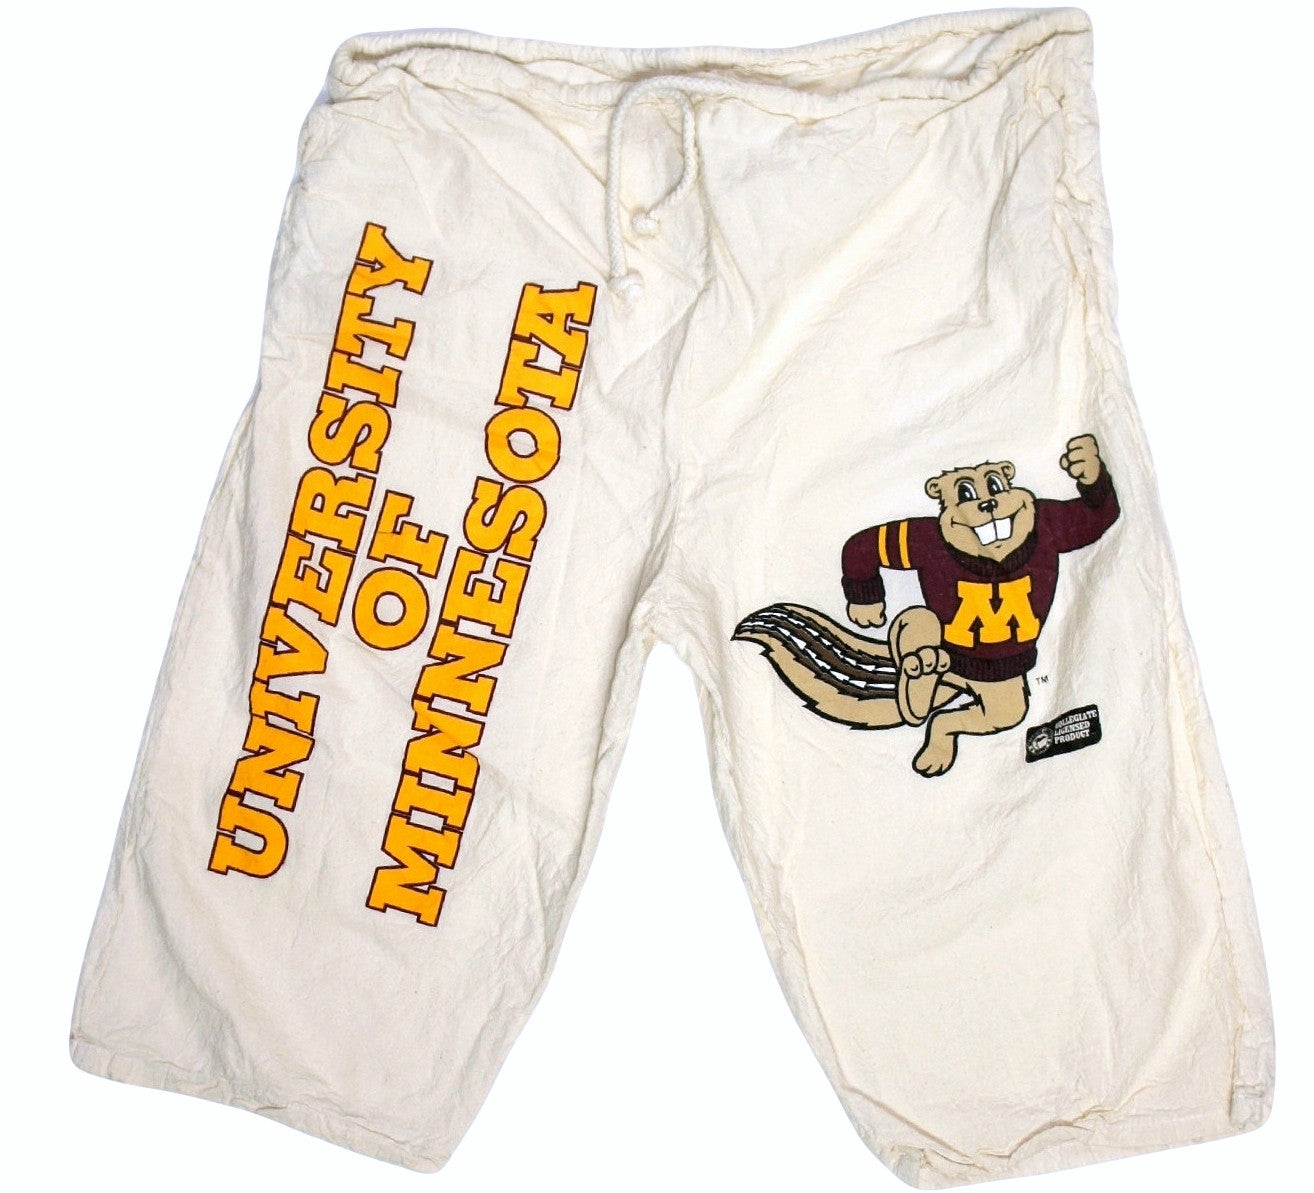 Golden Gophers Vintage Shorts - And Still